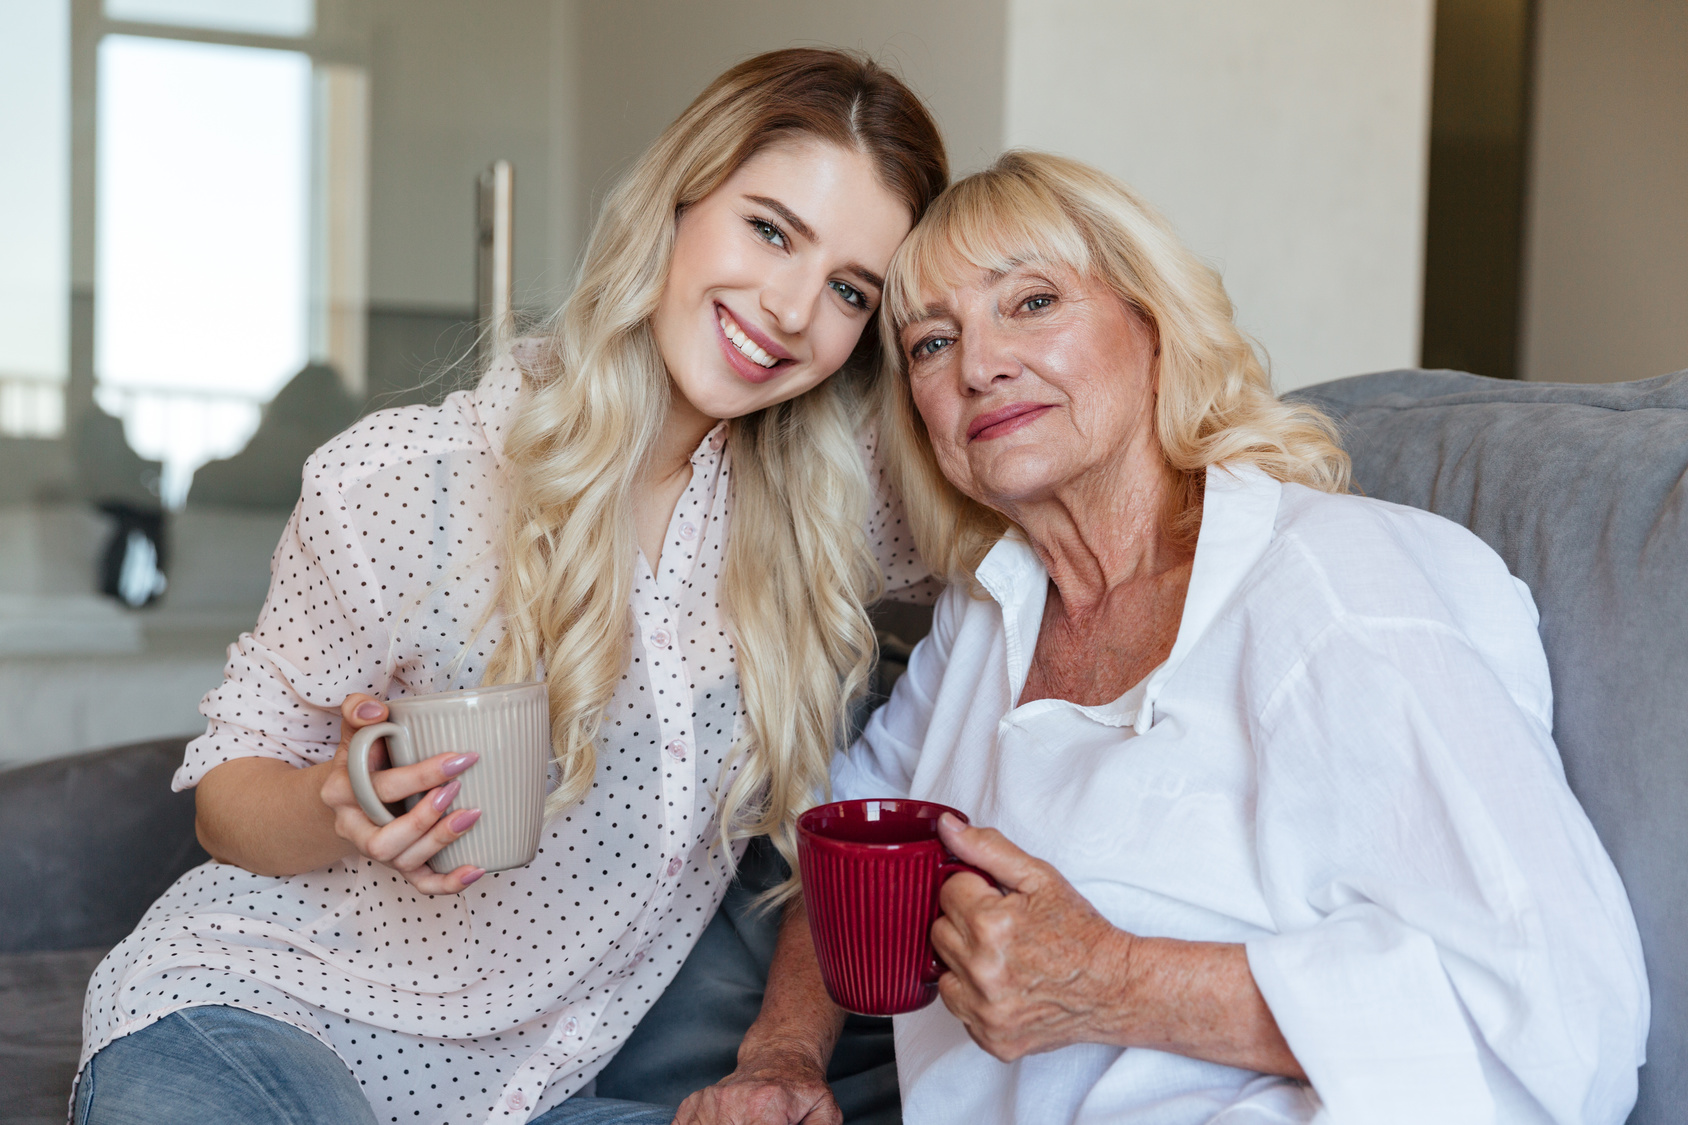 Picture of smiling young lady sitting at home with her grandmother drinking tea. Looking camera.